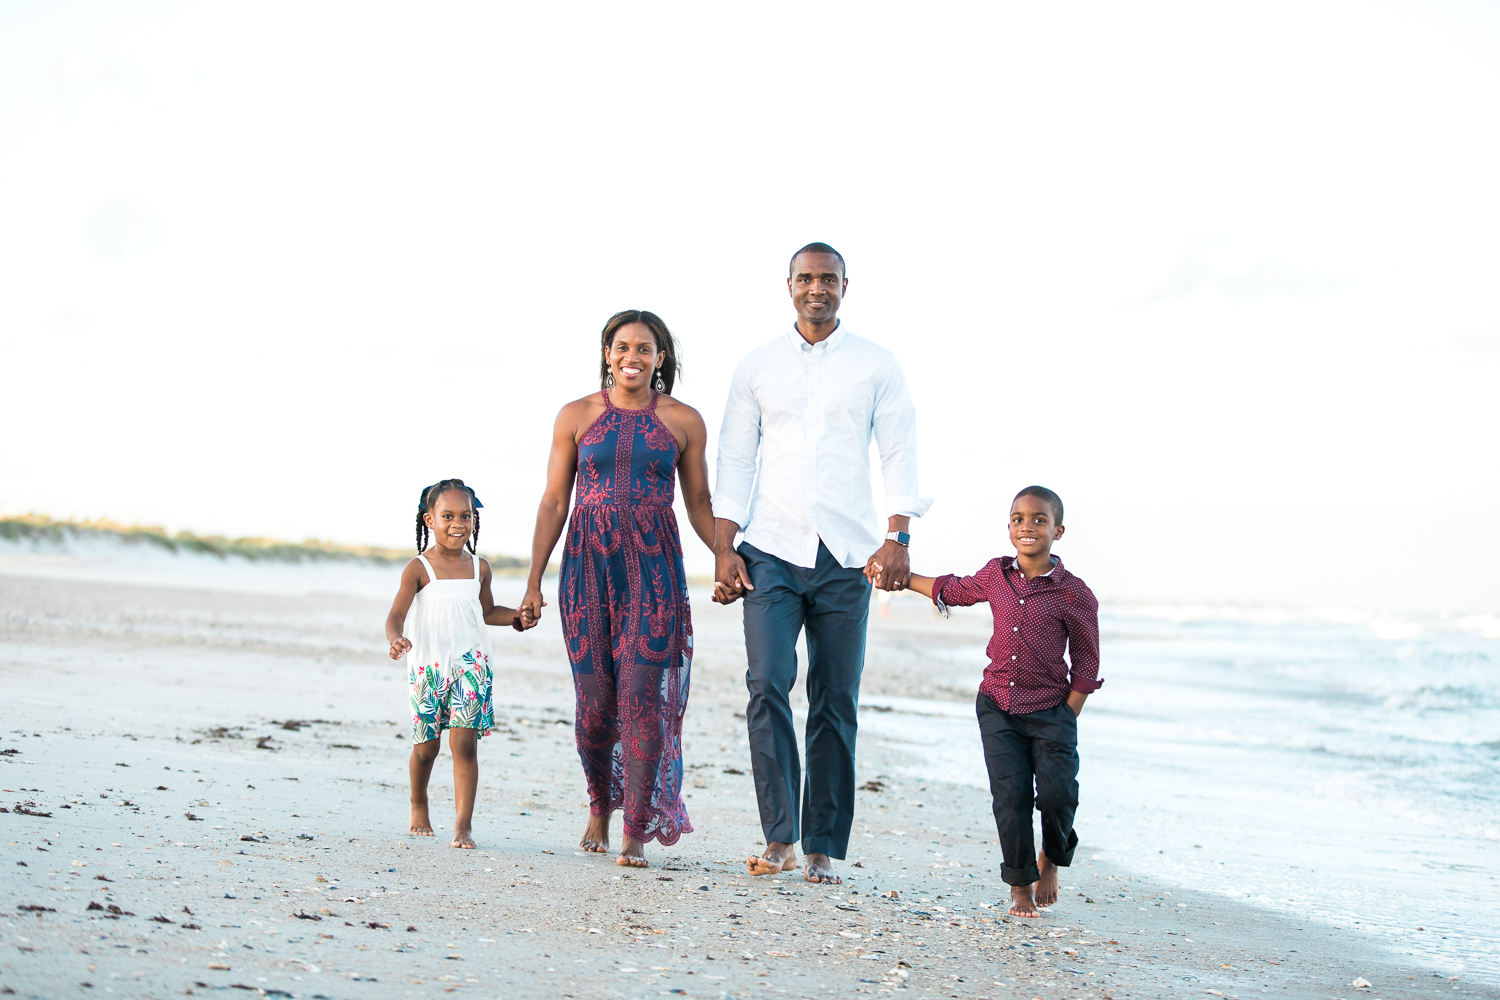 st.augustine family photo ideas at the beach